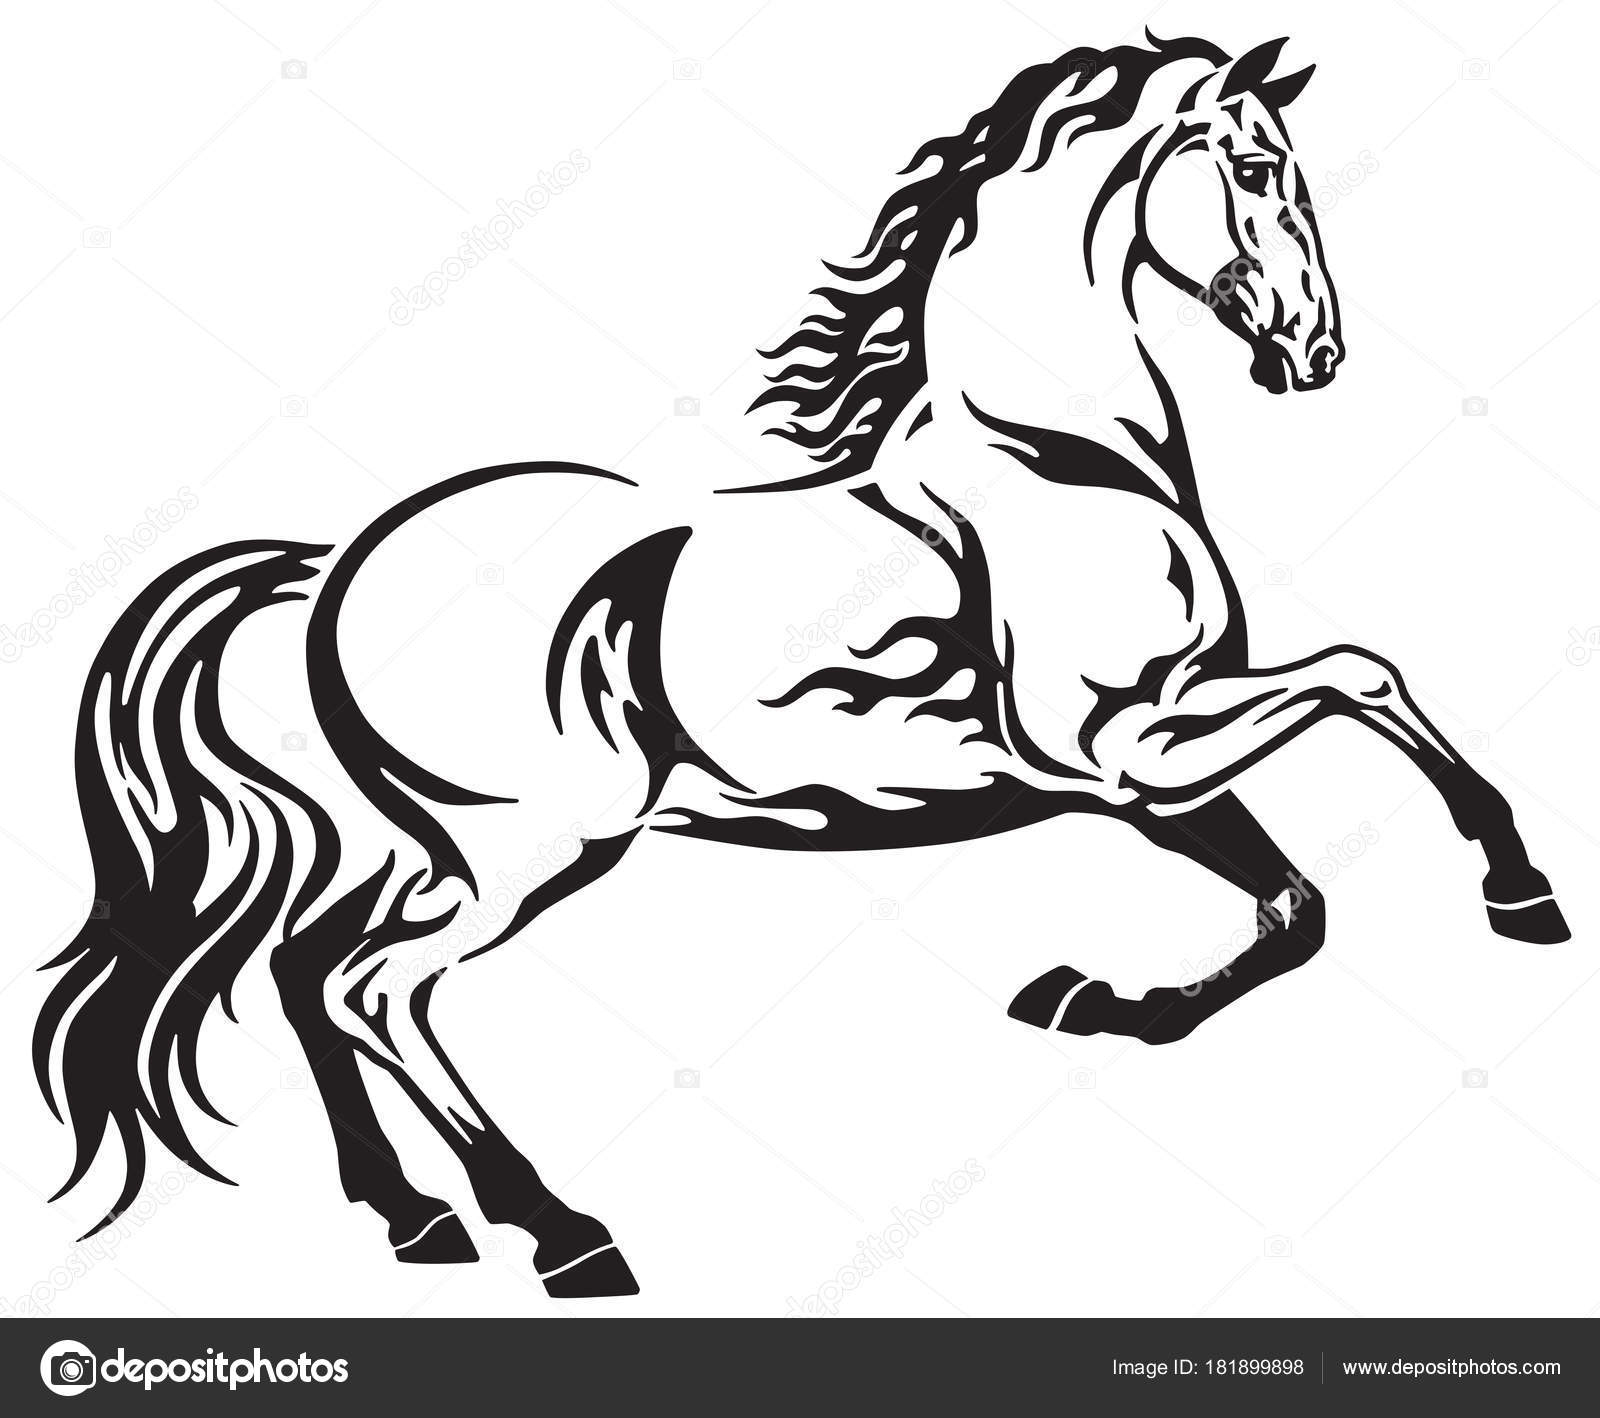 3d Horse Tattoos Horse Tribal Tattoo Black White Side View Vector Illustration Stock Vector C Insima 181899898